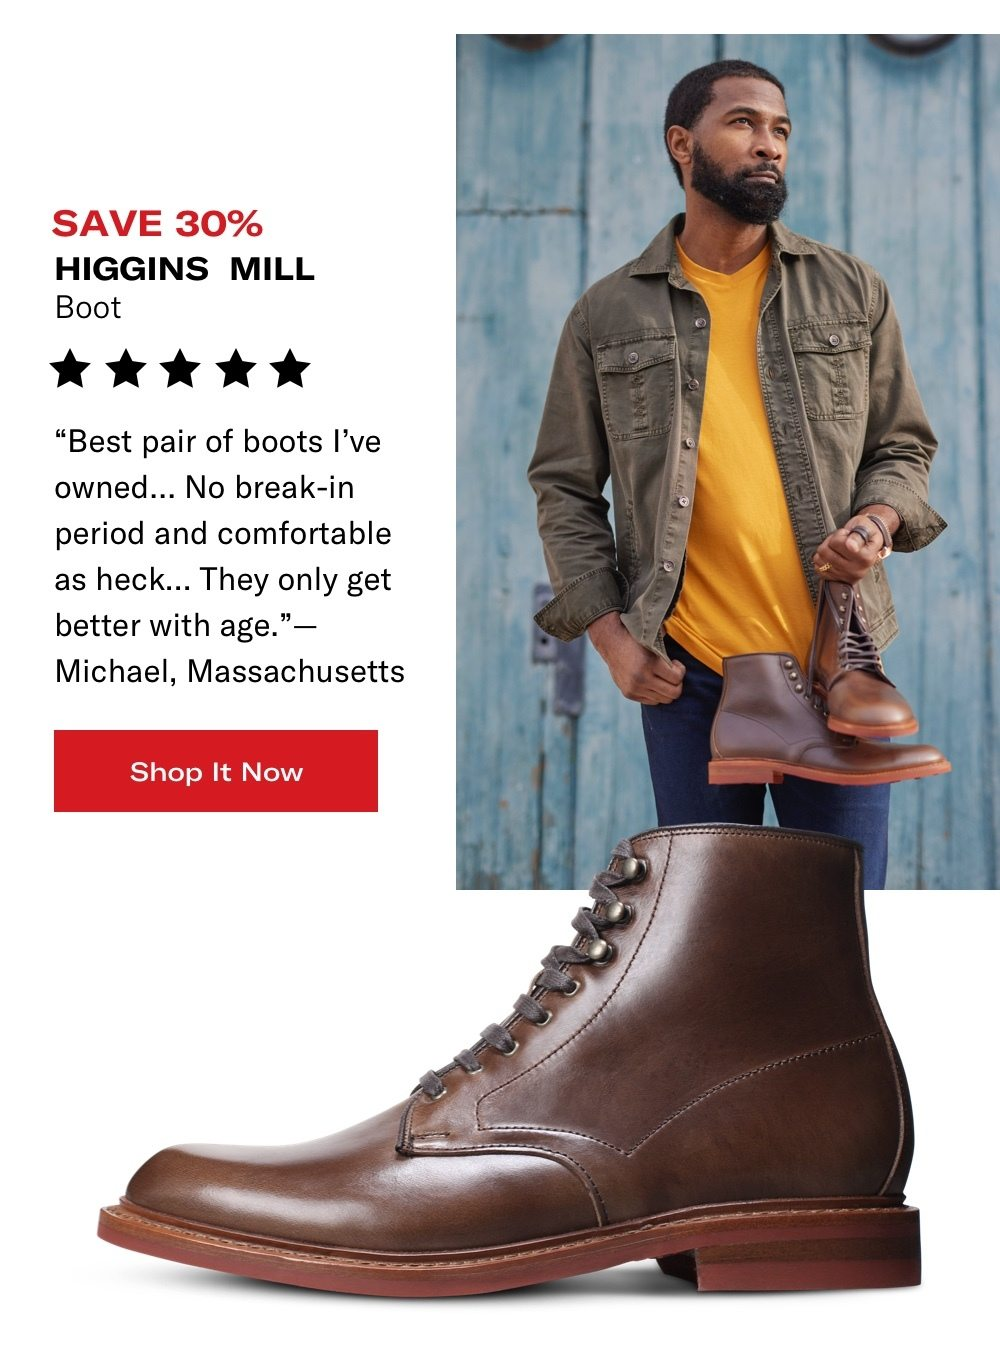 Save 30% Higgins Mill Boot - Shop It Now